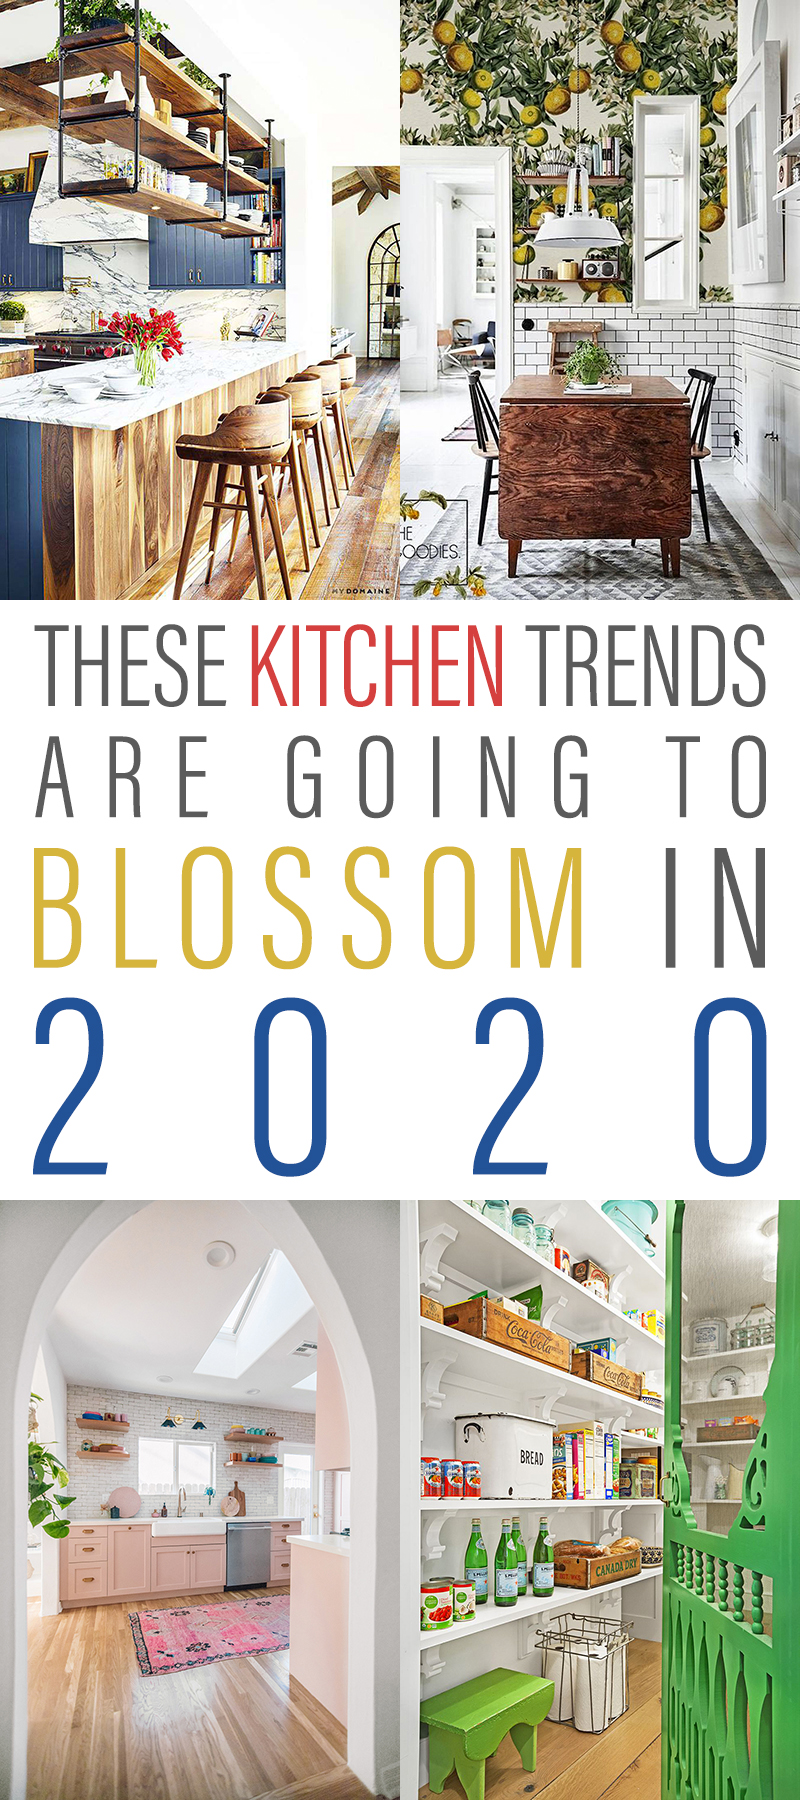 These Kitchen Trends are going to Blossom in 2020… so come and explore some Open Shelving… Pops of Color and much much more.  Bet there is an idea here you are going to love.